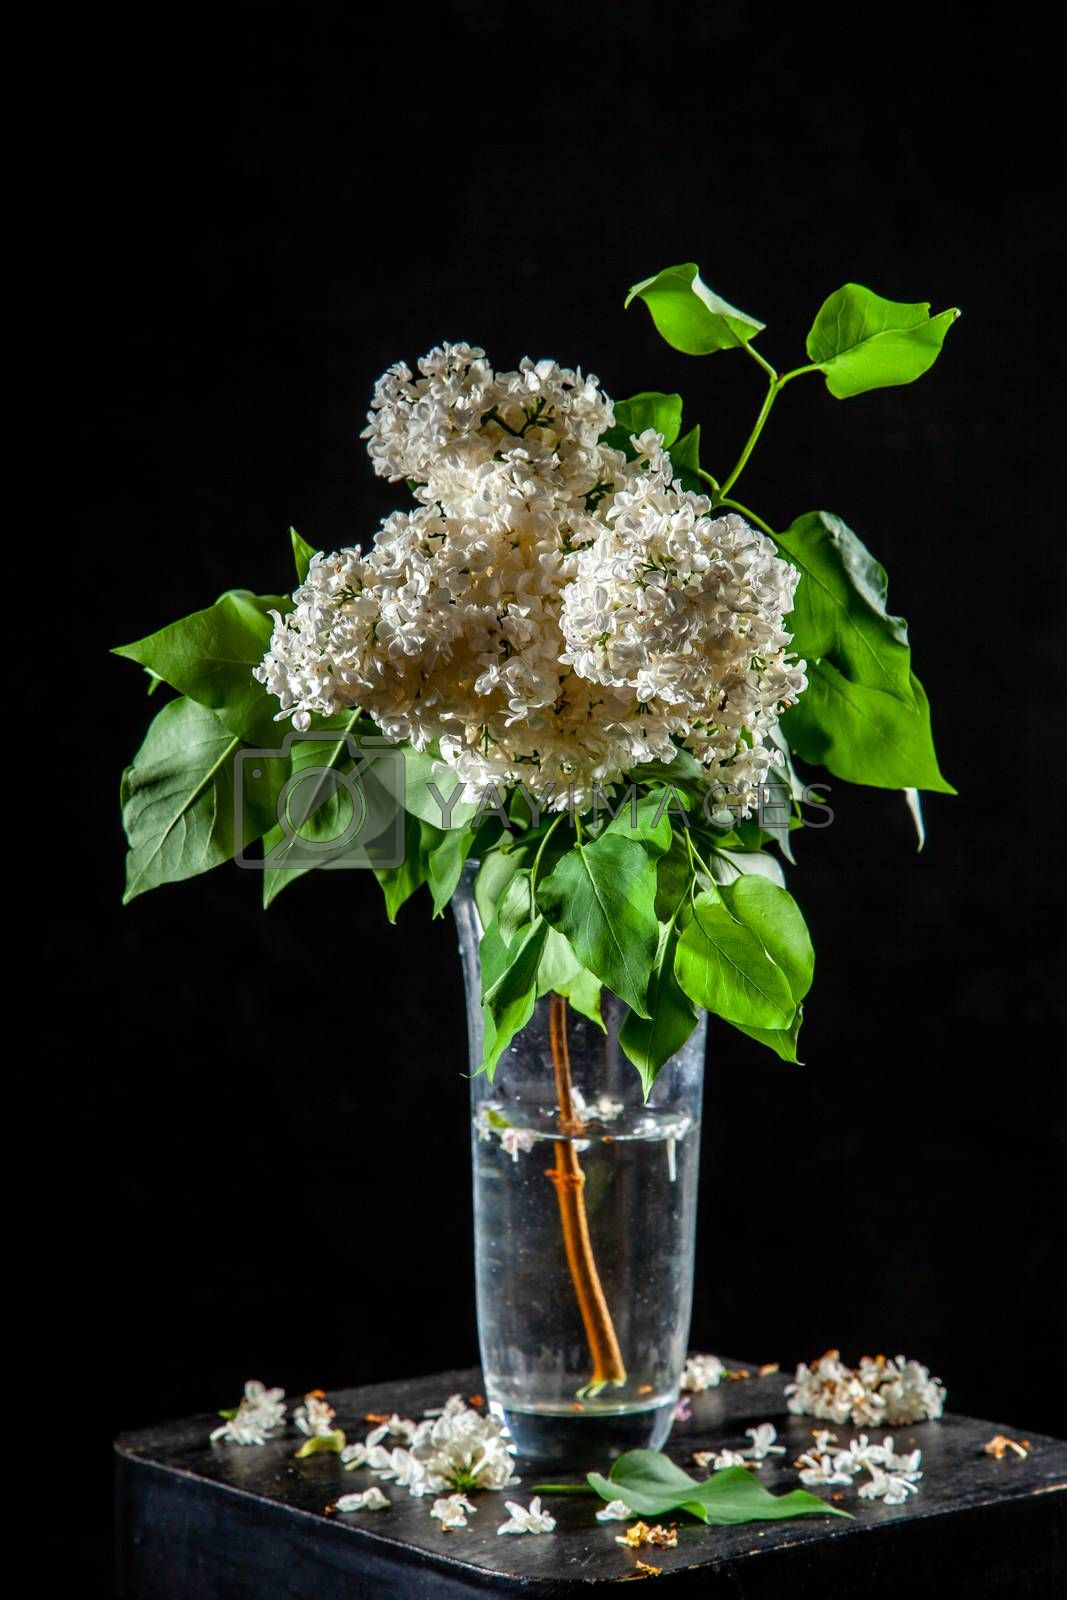 Branches of white lilac in glass vase on black background. Spring branch of blooming lilac on the table with black background. Fallen lilac flowers on the table.